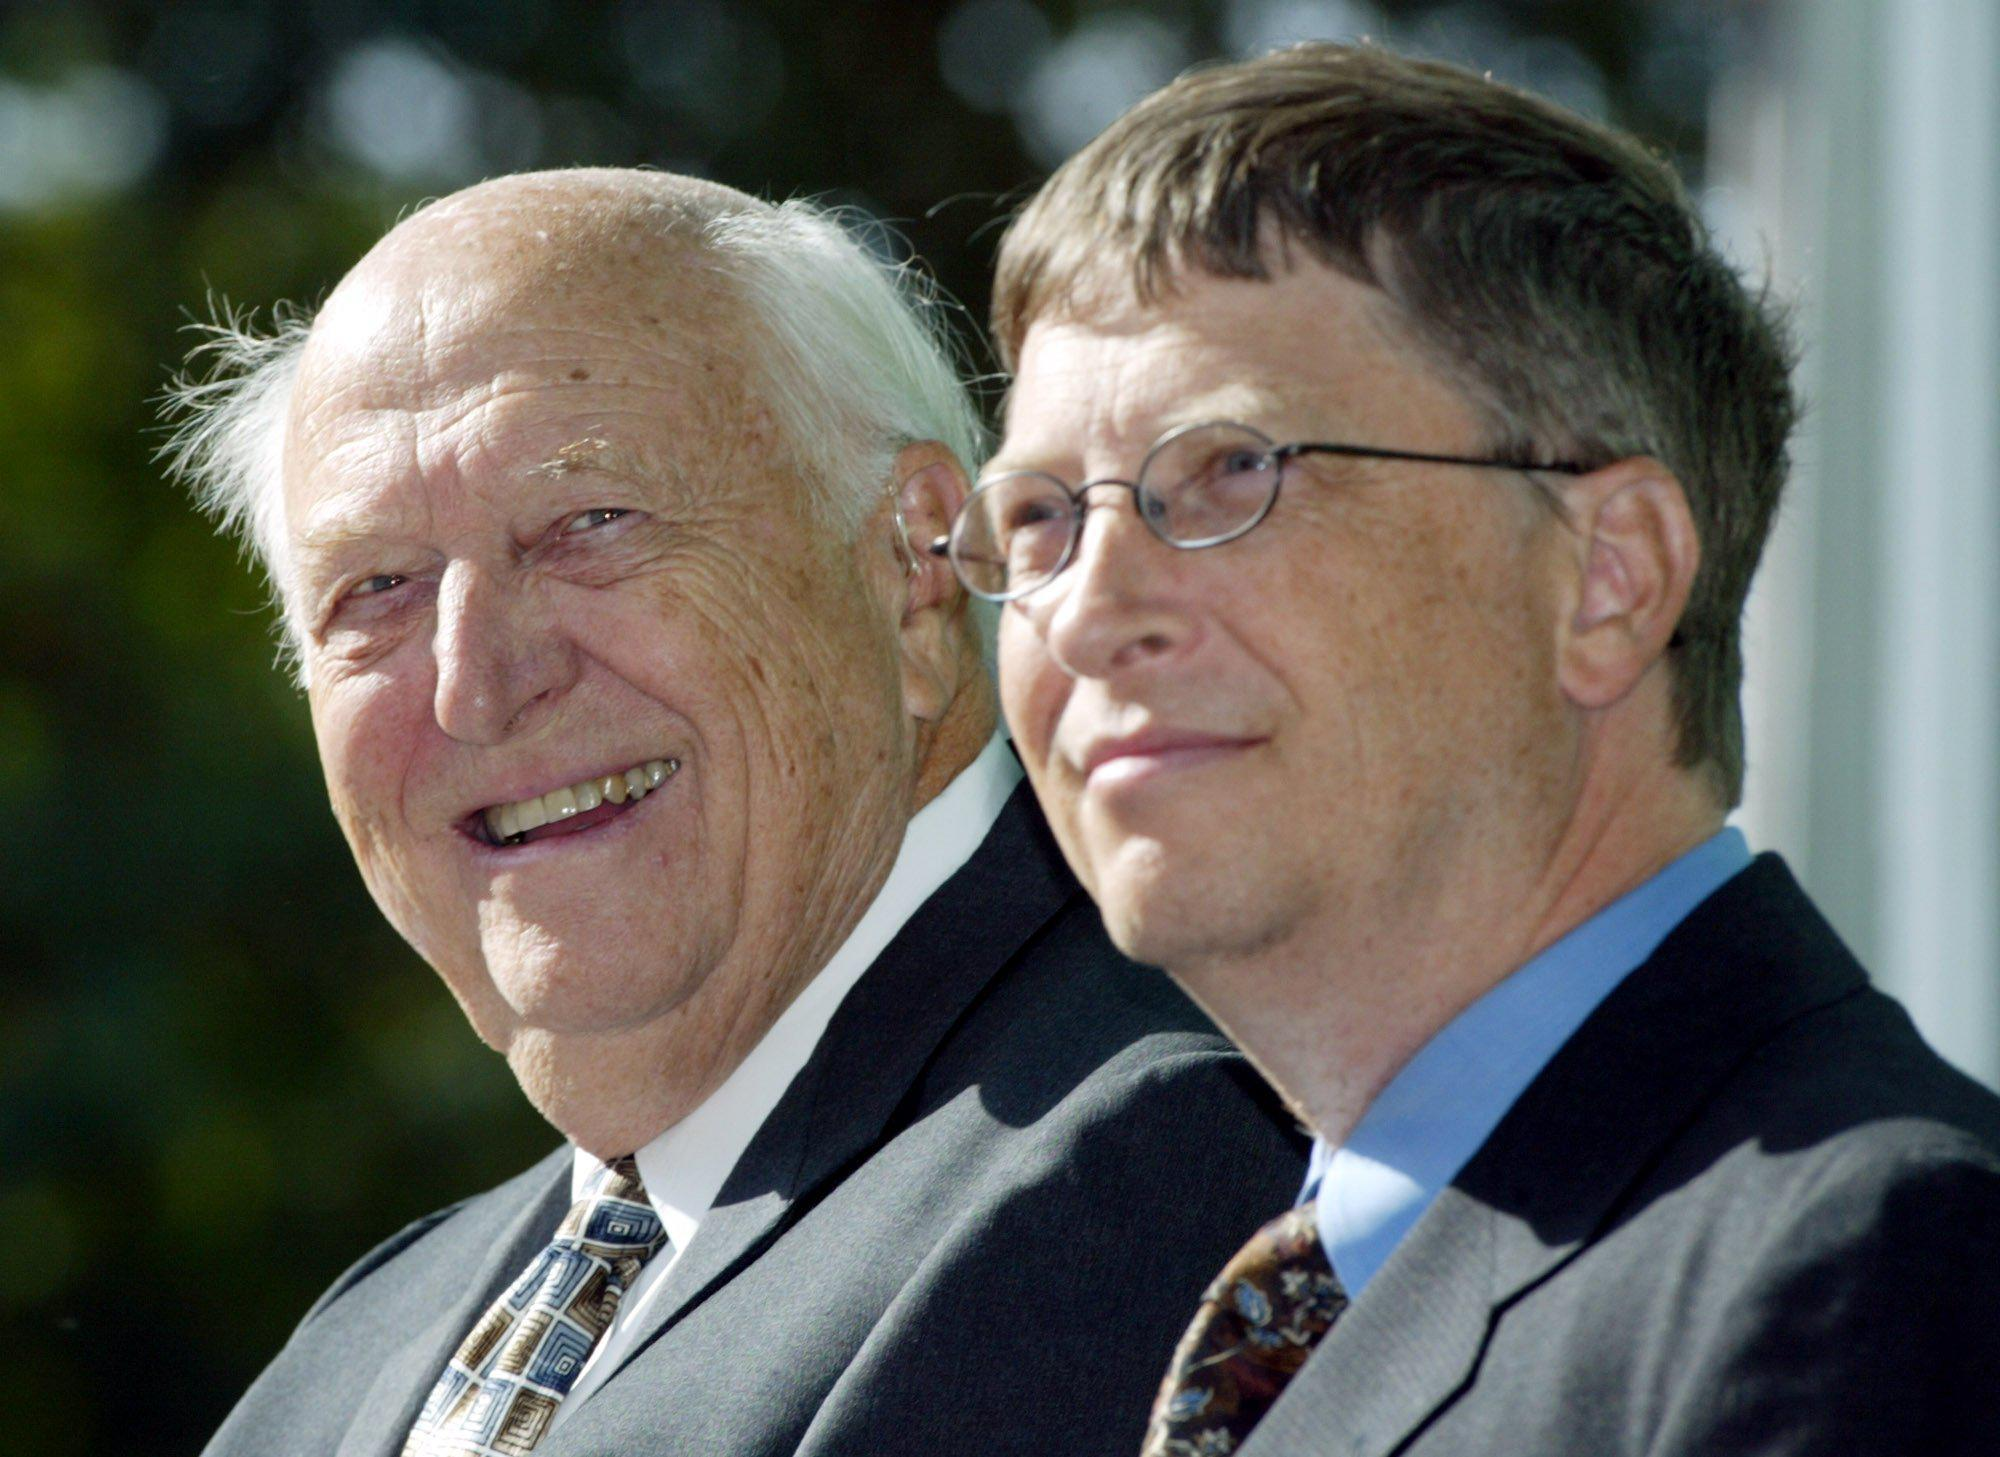 Bill Gates reveals his dad has Alzheimer's — now he's spending around £71million on trying to find a cure